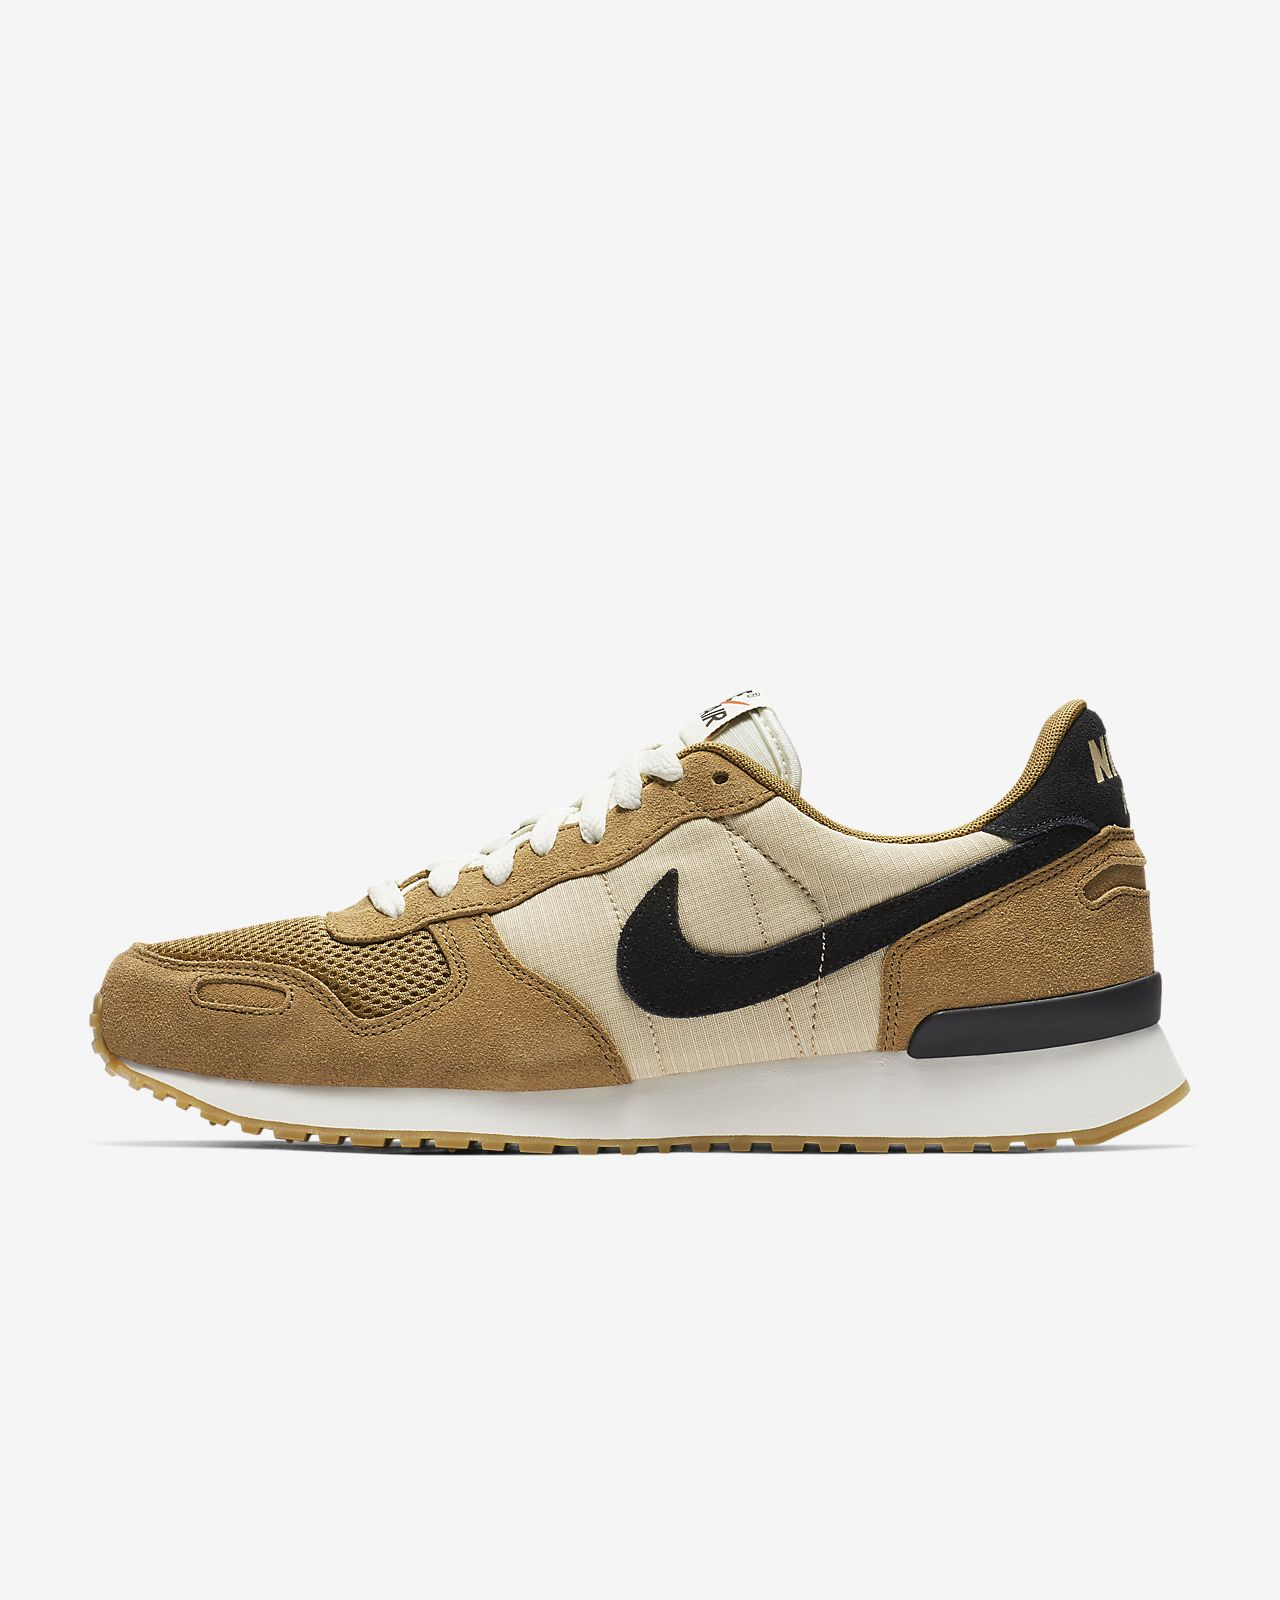 new arrival cf50f 73fe8 ... Chaussure Nike Air Vortex pour Homme